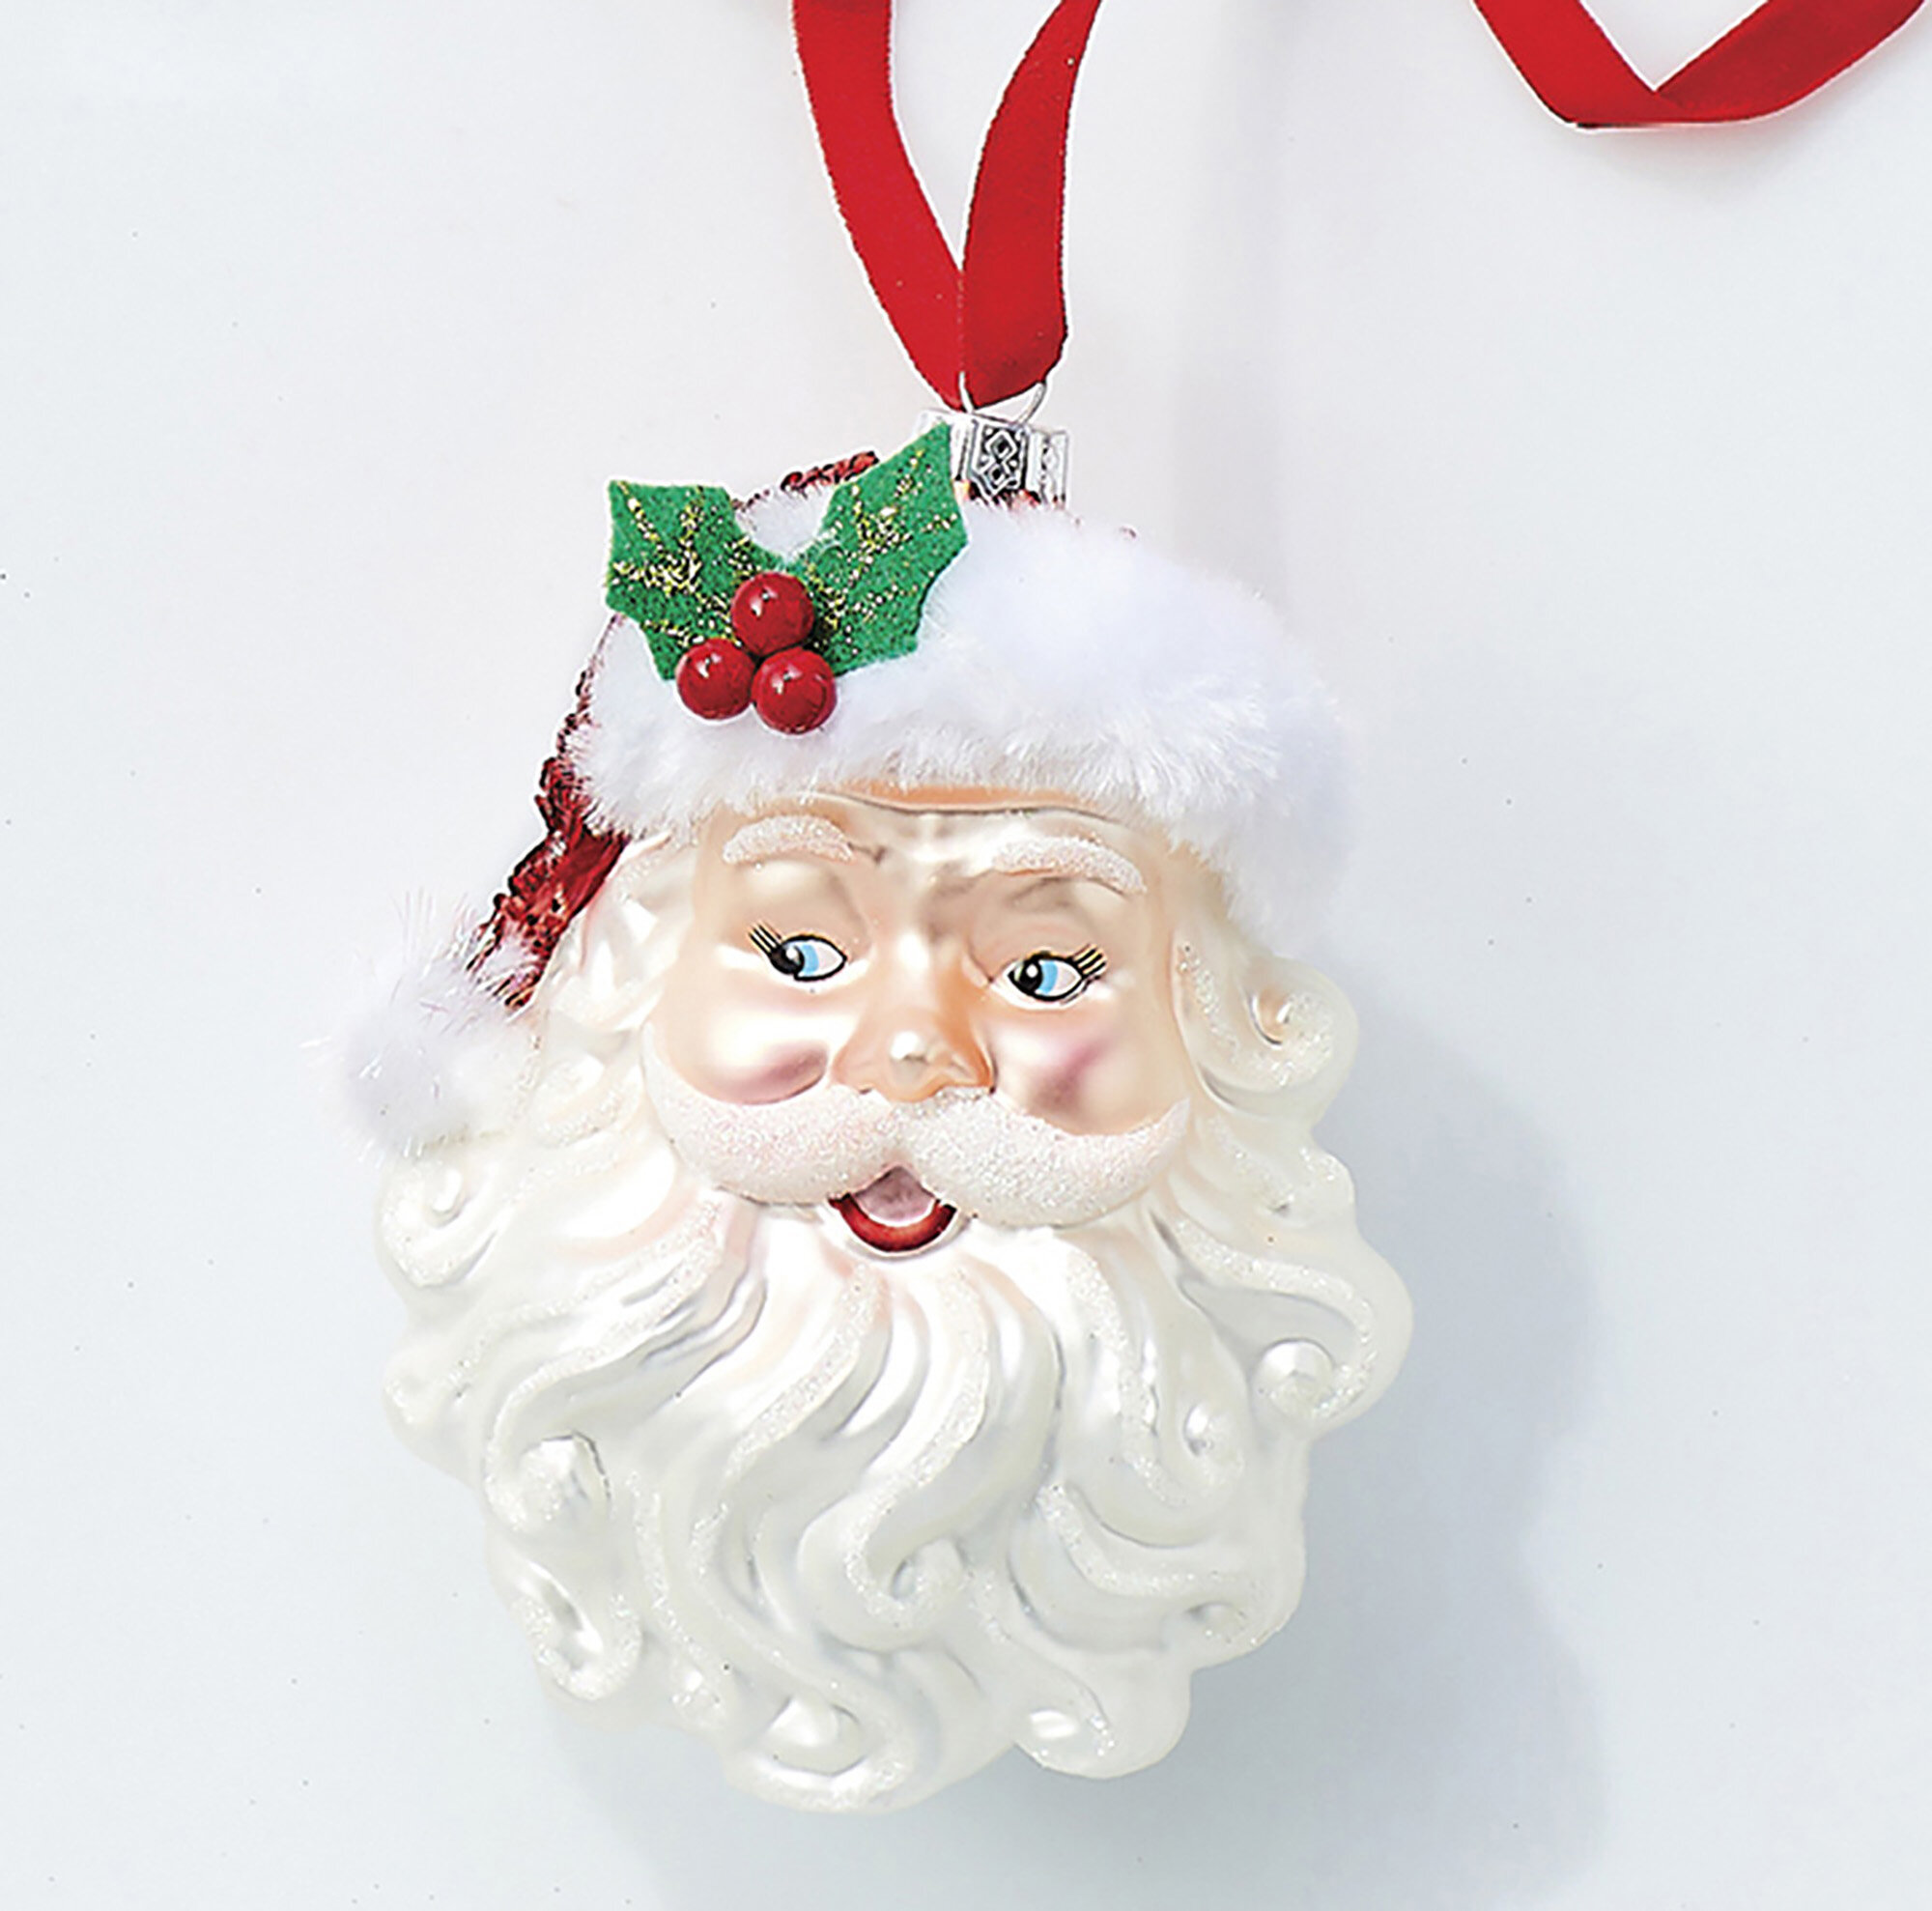 Hanging Figurines Santa Claus Christmas Ornaments You Ll Love In 2021 Wayfair